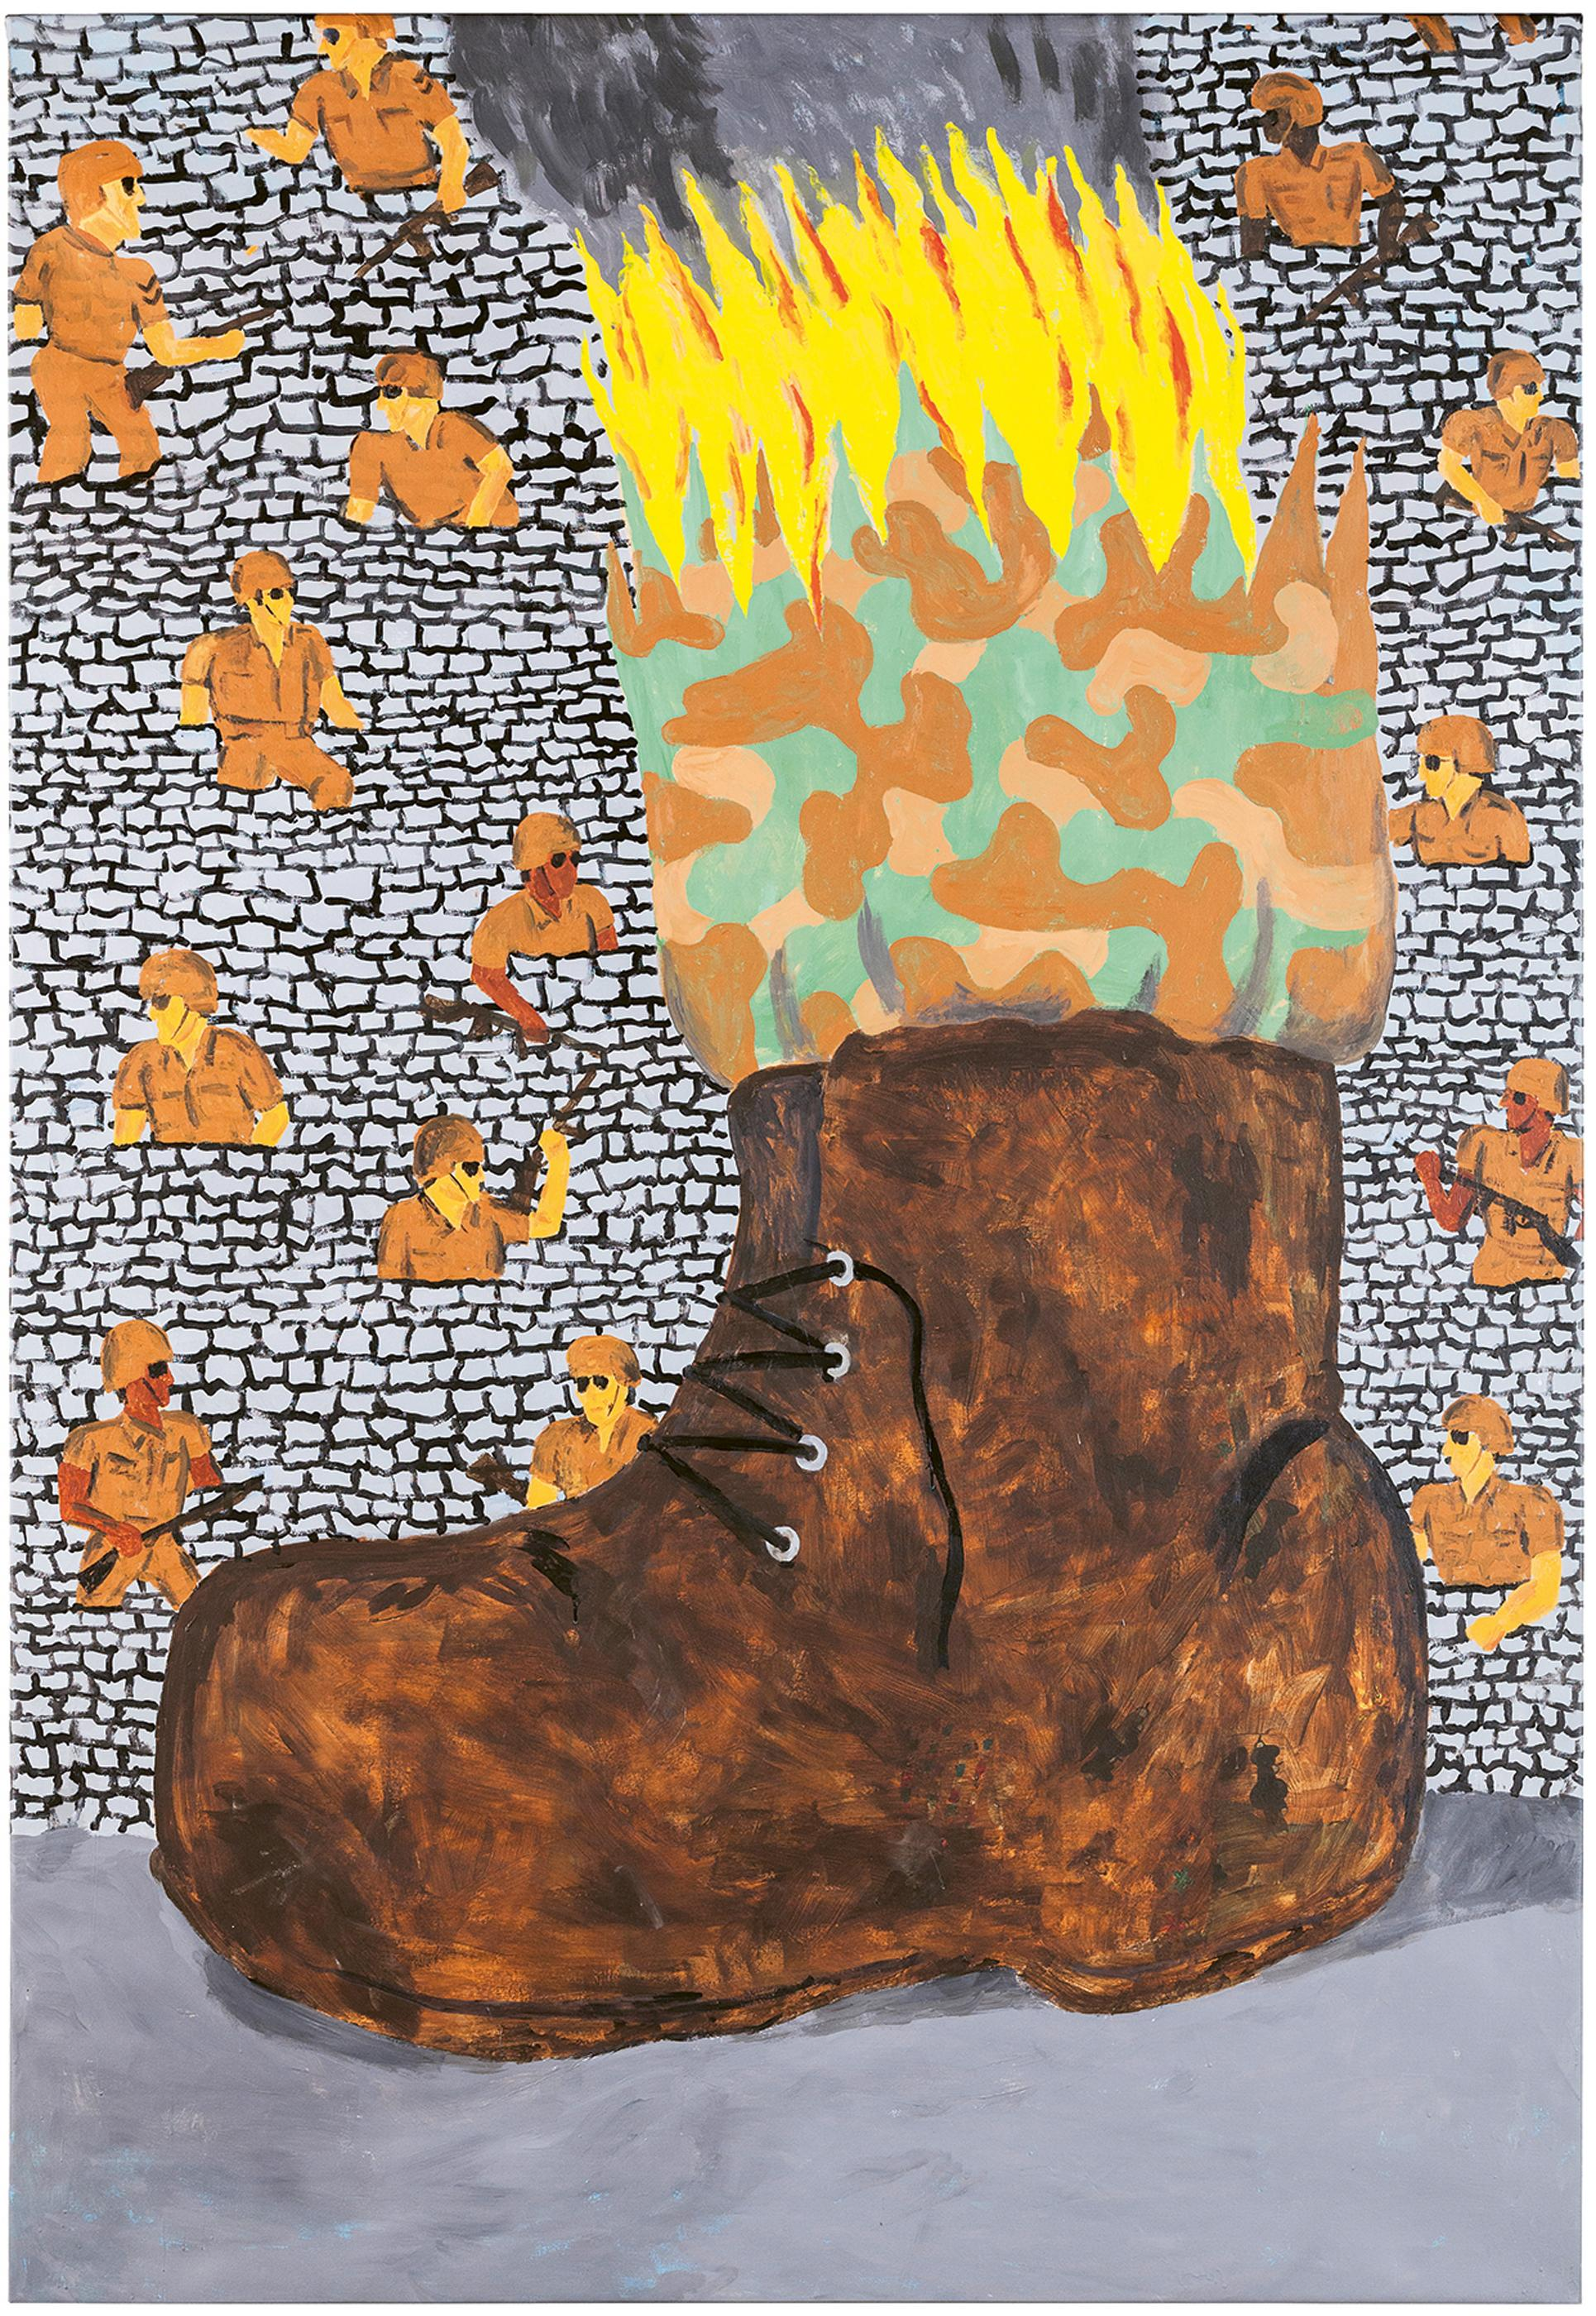 Seymour Chwast, Boot, Acrylic Painting